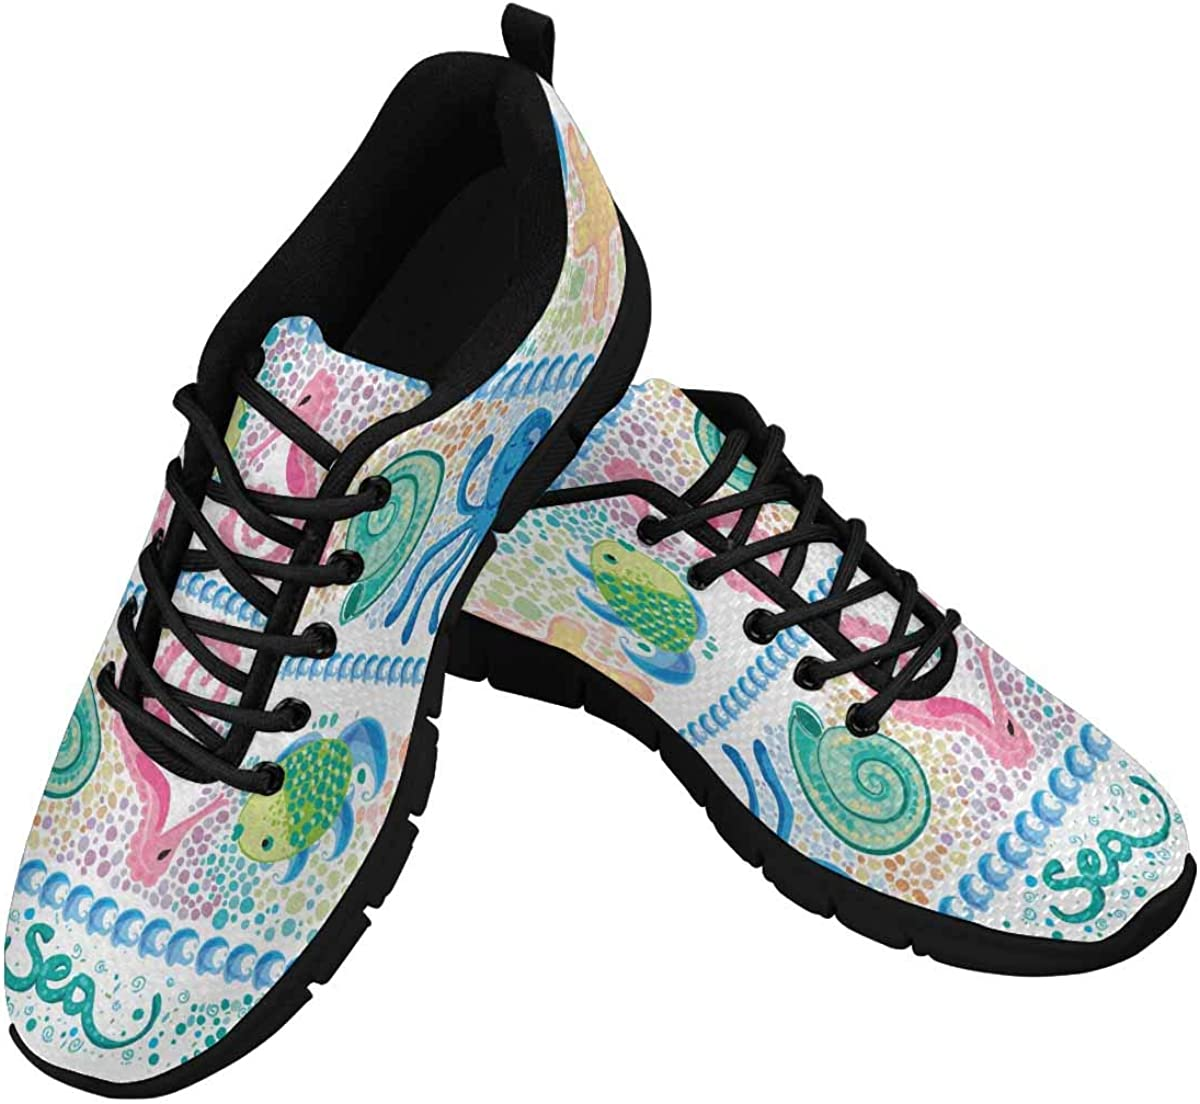 INTERESTPRINT Sea Shell Starfish Octopus Seahorse Women's Athletic Mesh Breathable Casual Sneakers Fashion Tennis Shoes